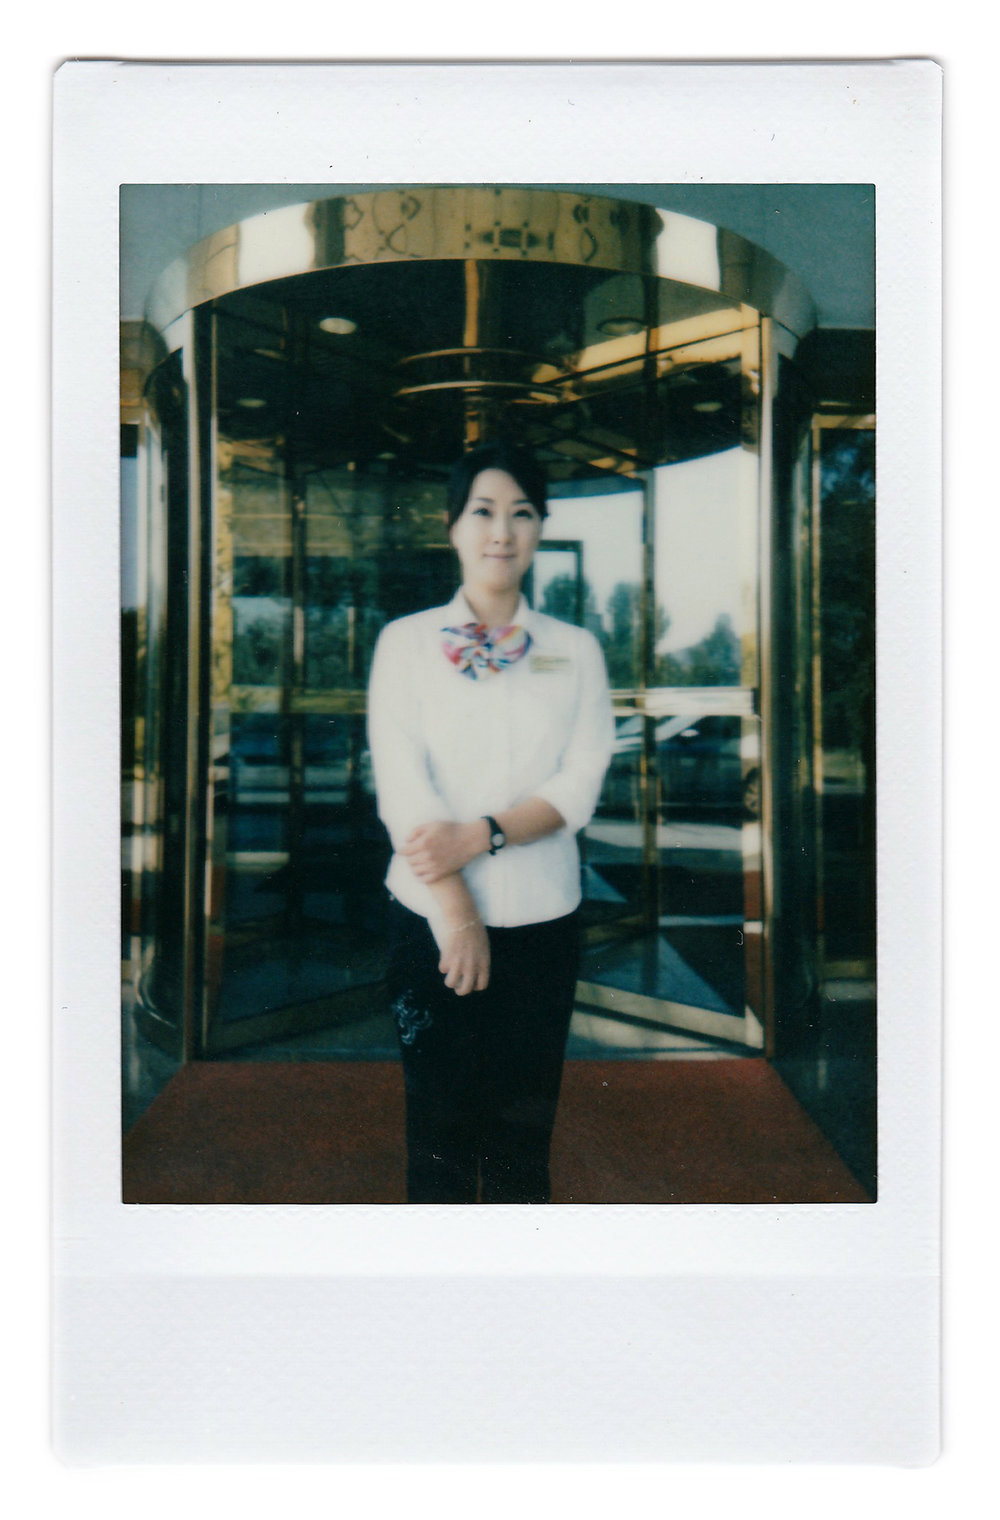 "In this Oct. 14, 2015, photo made with an instant camera, Kil Jin A, 29, poses for a portrait at the entrance of the Pothonggang Hotel where she works with mobile phone service provider Koryolink, in Pyongyang, North Korea. She has been working with Koryolink for 8 years and enjoys her job as a sales executive because it gives her opportunities to meet visitors from abroad. When asked what's important to them, North Koreans might talk about working hard, or doing well at sports, or having a big family, but leader Kim Jong Un is never far from the conversation. Her motto: ""To always help others, but of course, patriotism towards my country is most important."" (AP Photo/Wong Maye-E)"